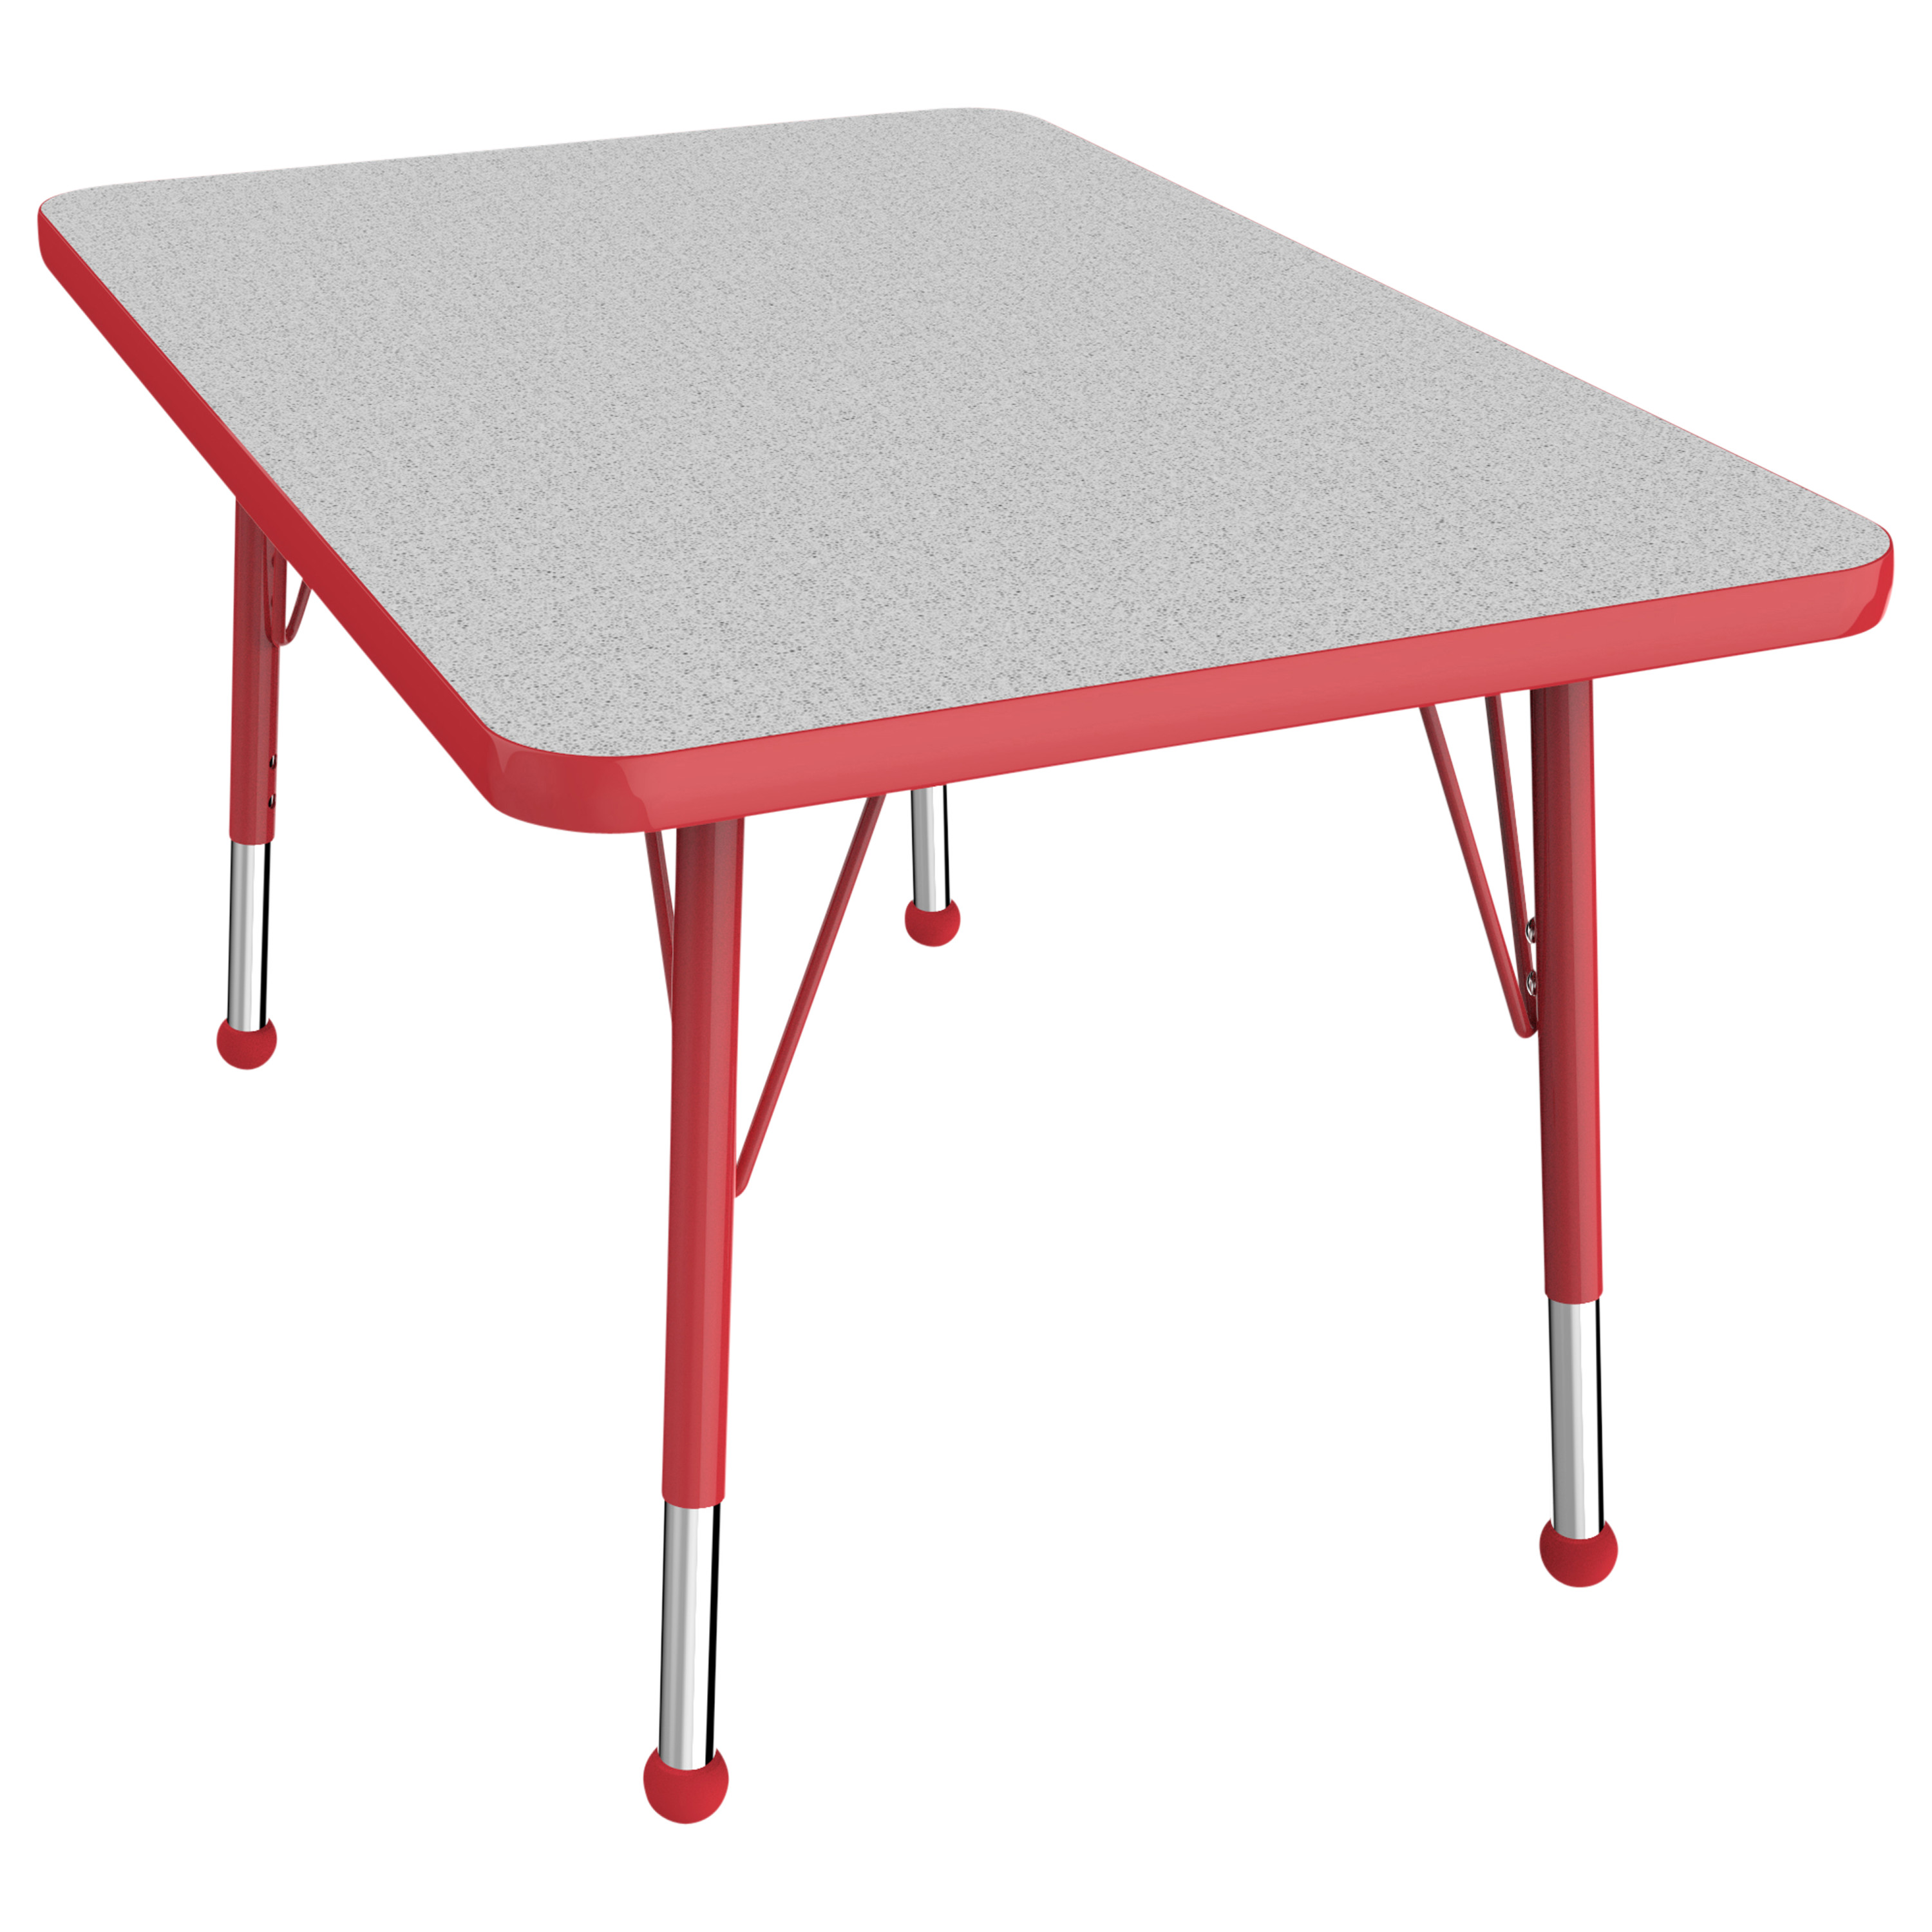 ECR4Kids 24in x 36in Rectangle Everyday T-Mold Adjustable Activity Table Maple/Red - Toddler Swivel